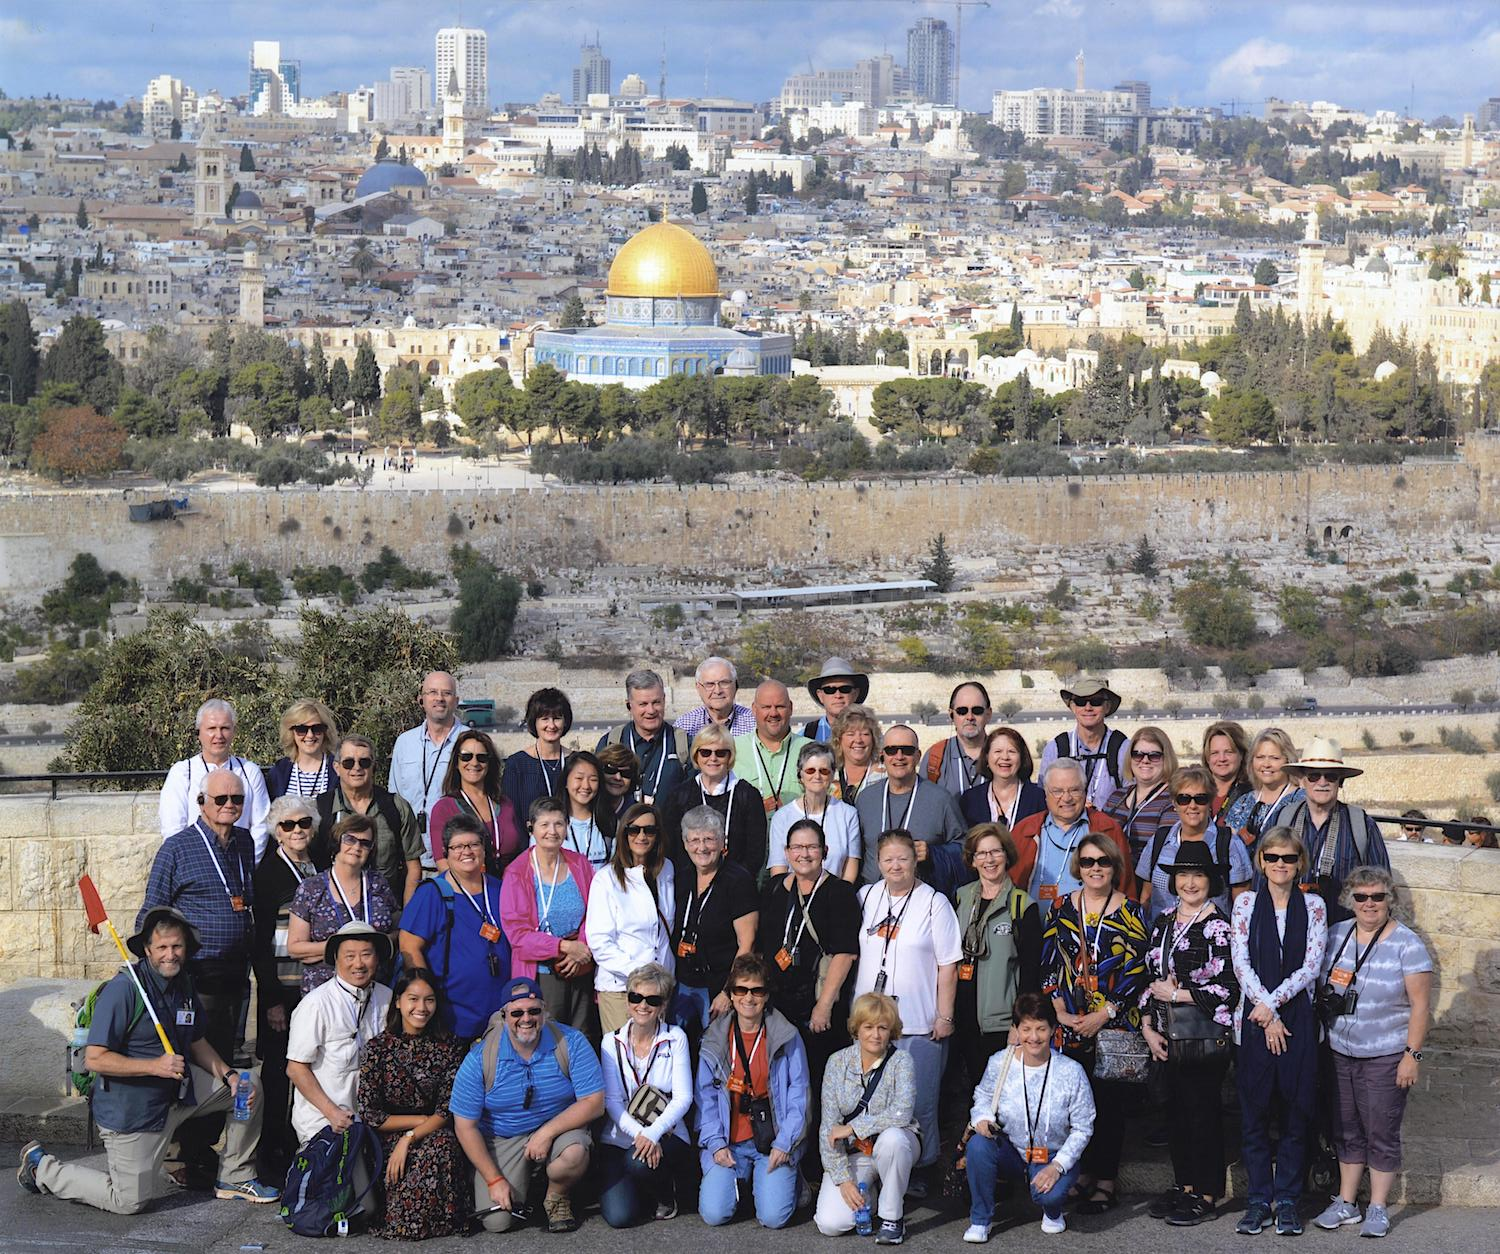 Group shot from the Jerusalem overlook on the Mount of Olives.